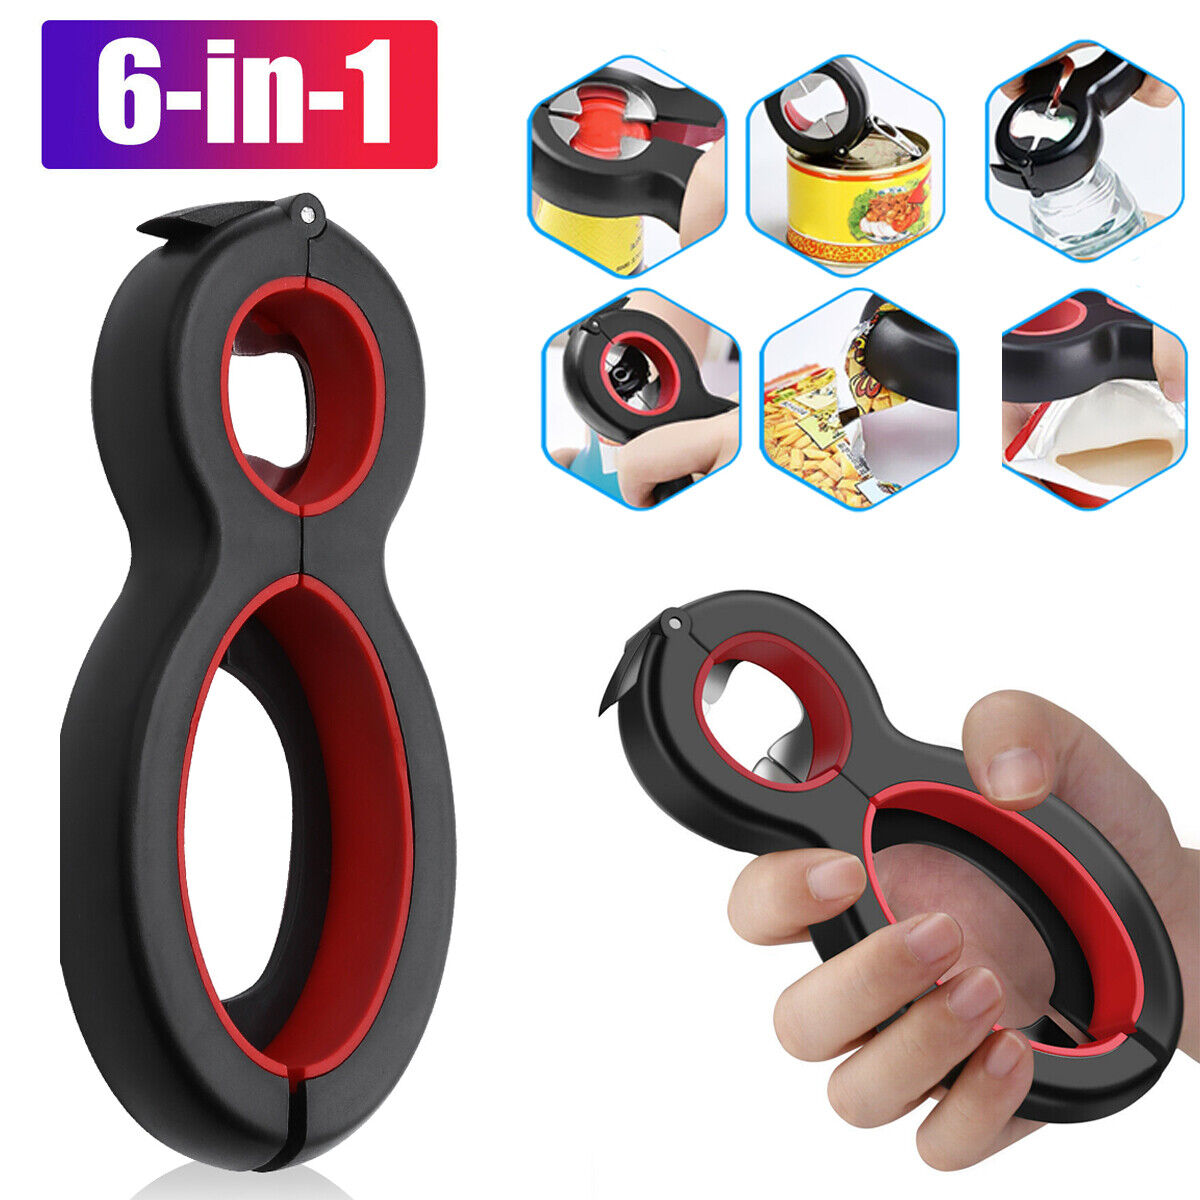 6in1 Twist Bottle Opener All in One Jar Gripper Can Remover